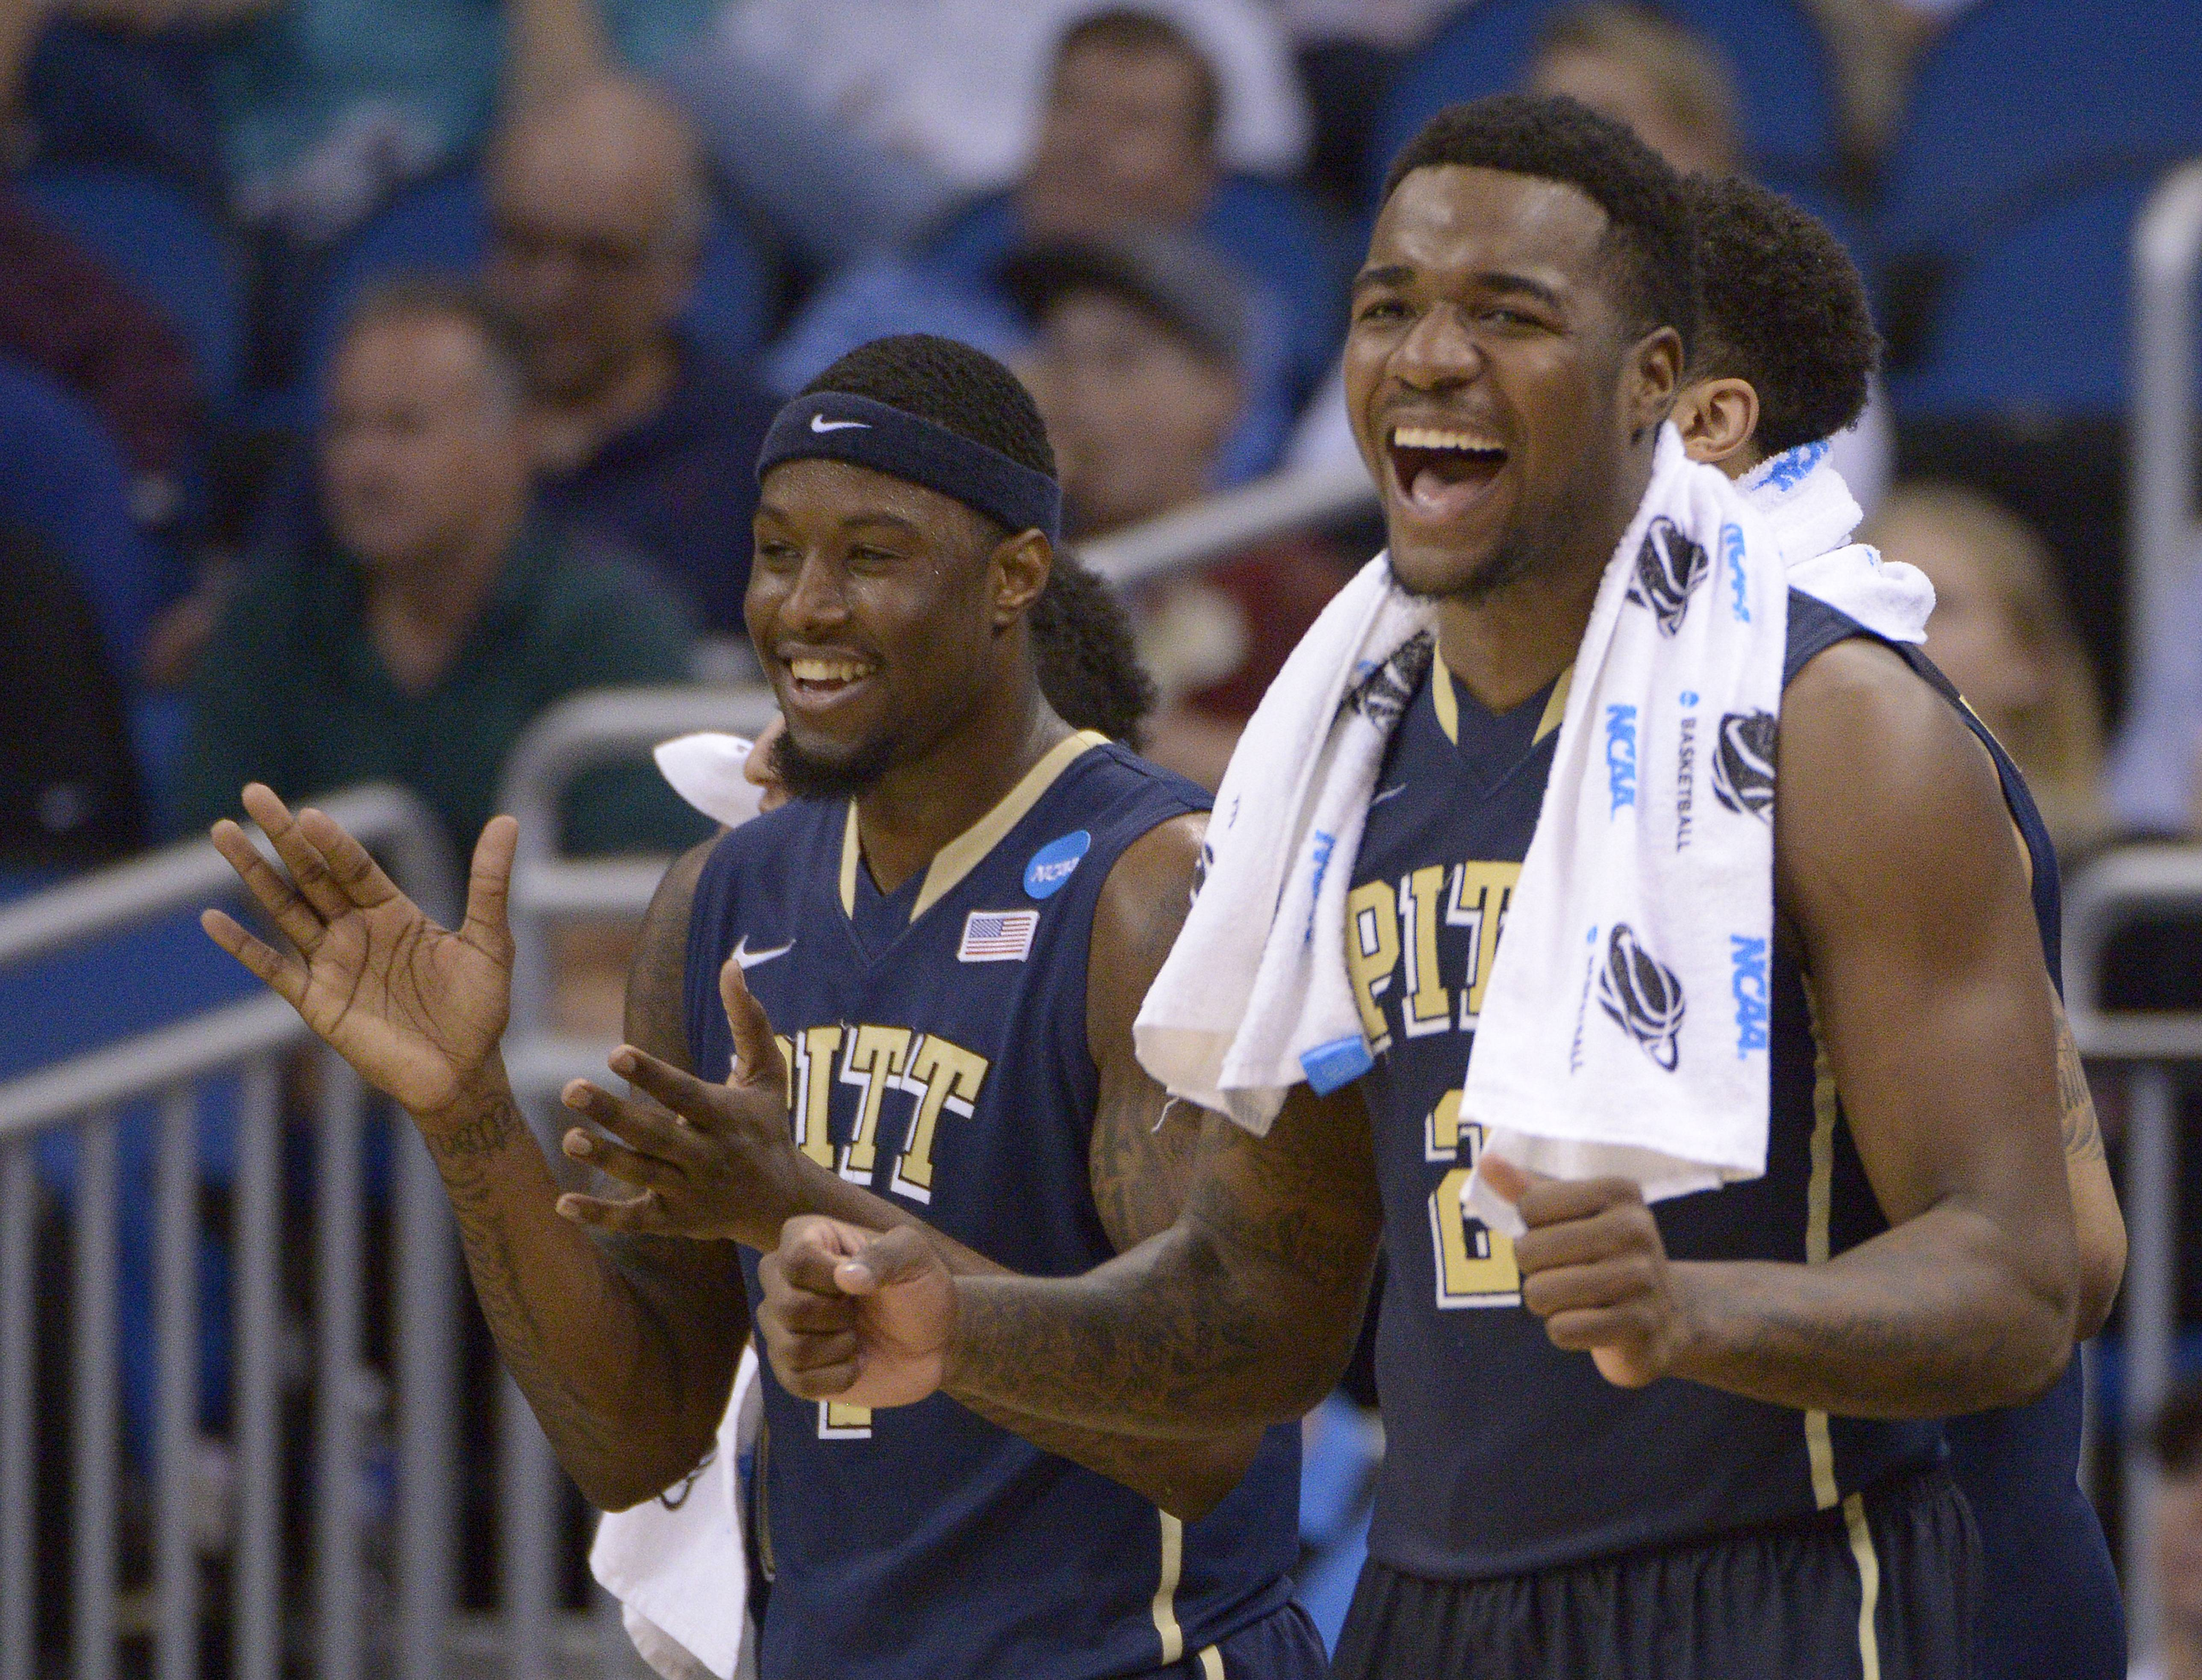 Pittsburgh forwards Jamel Artis (1) and Michael Young (2) celebrate their team's 77-48 victory over Colorado in a second-round game in the NCAA college basketball tournament Thursday, March 20, 2014, in Orlando, Fla. (AP Photo/Phelan M. Ebenhack)